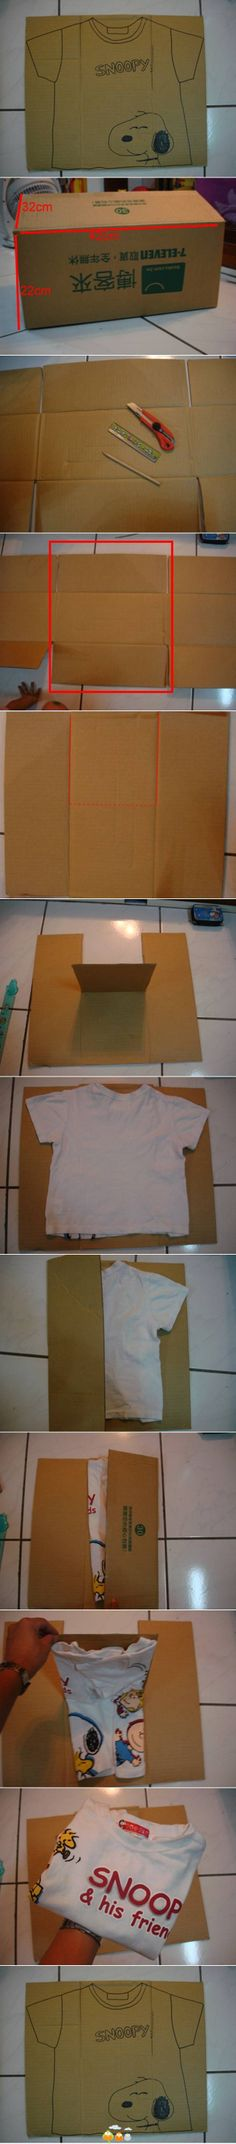 How to make an automatic T-shirt folder out of a cardboard box.